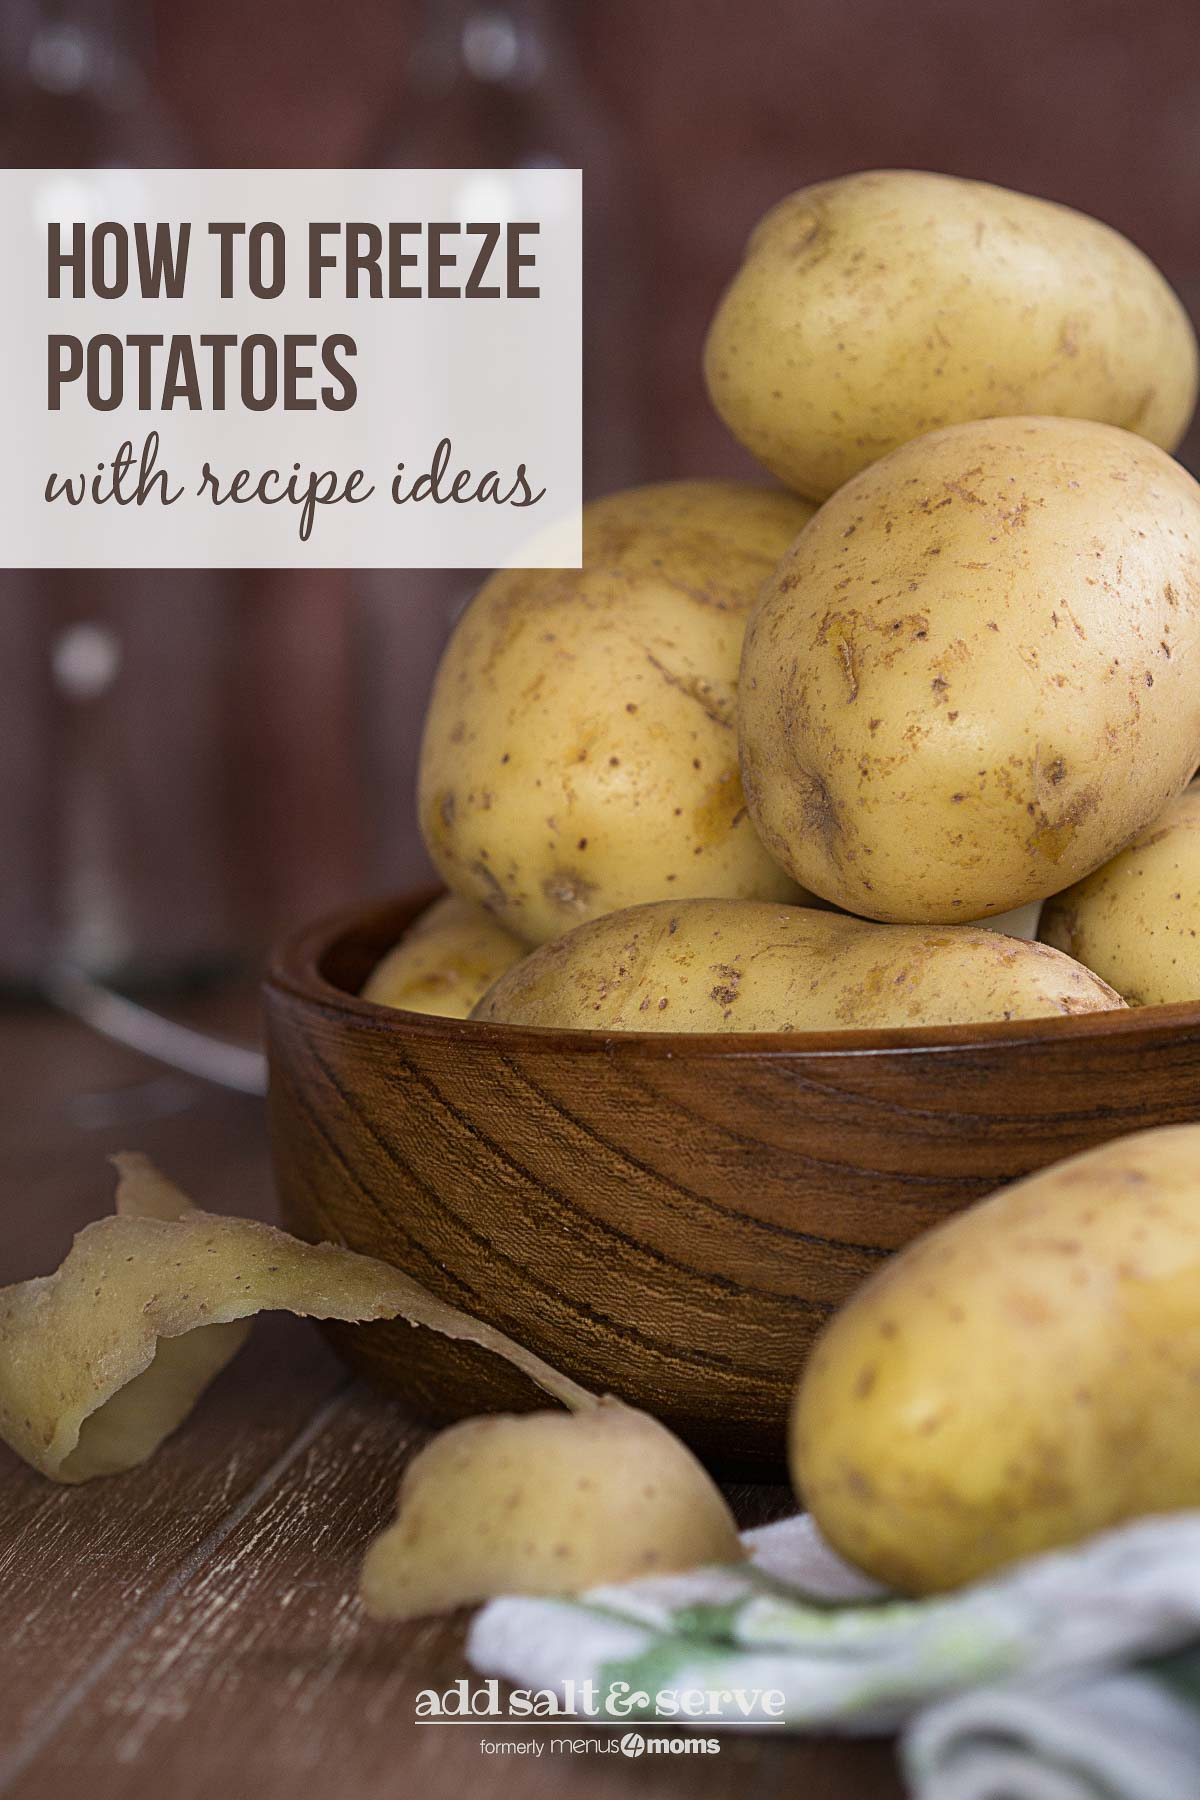 raw potatoes with text How to freeze potatoes with recipe ideas